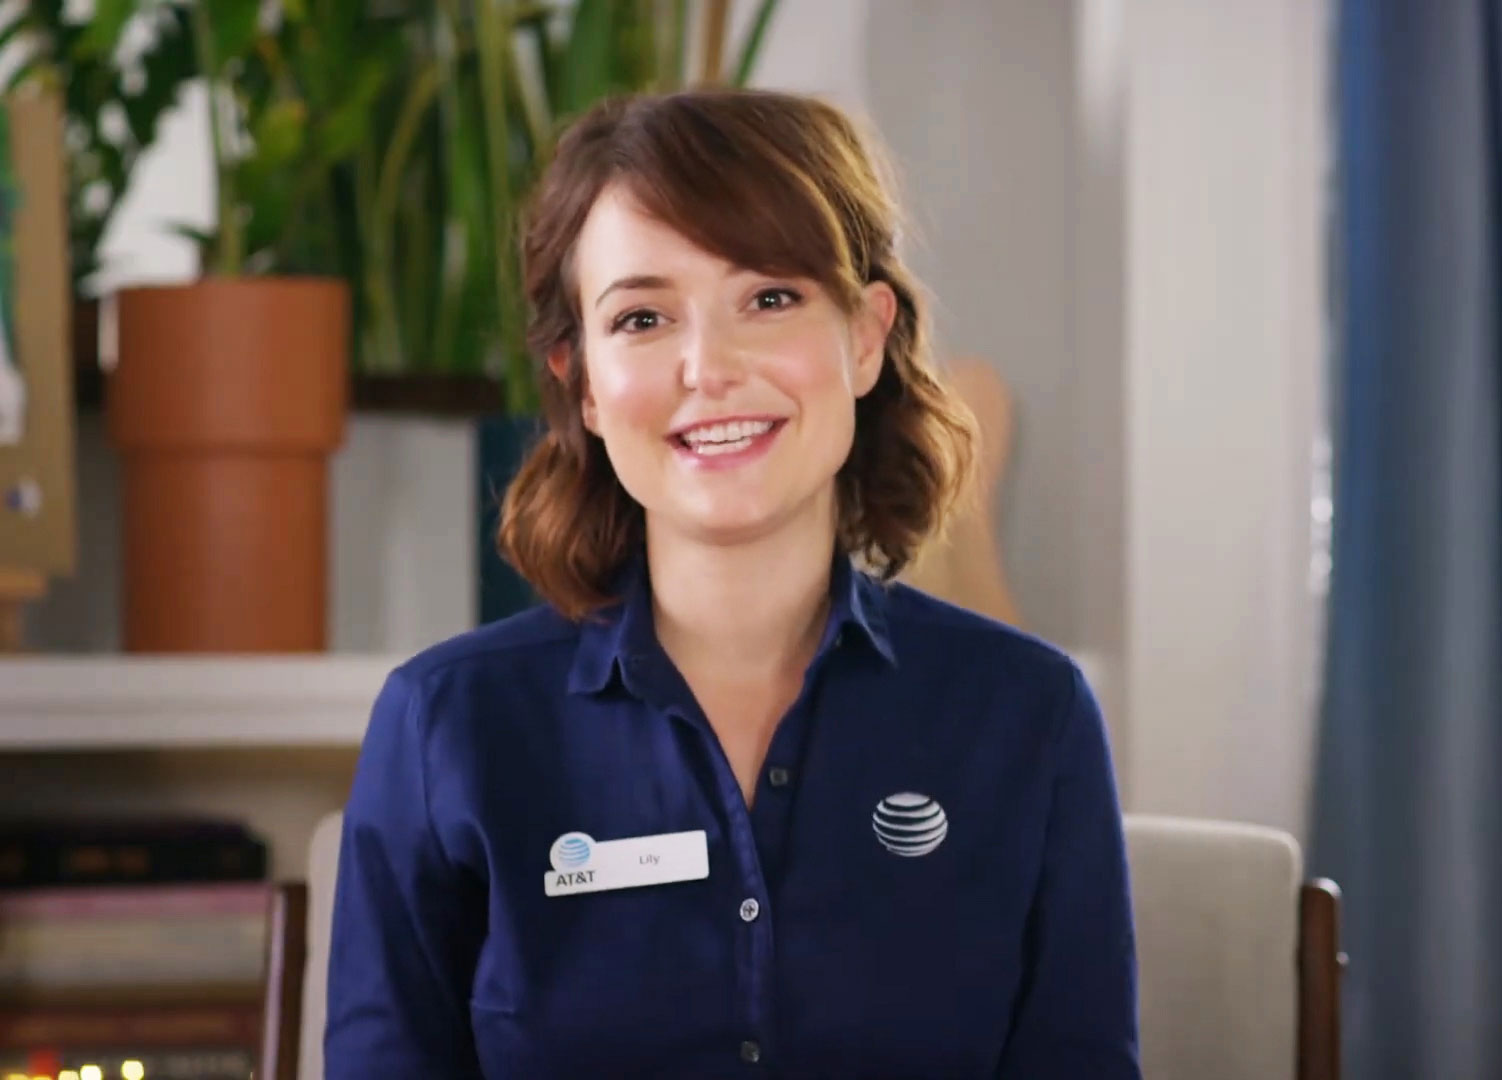 Lily Returns for AT&T, as Milana Vayntrub Shoots New Ads at Home ...